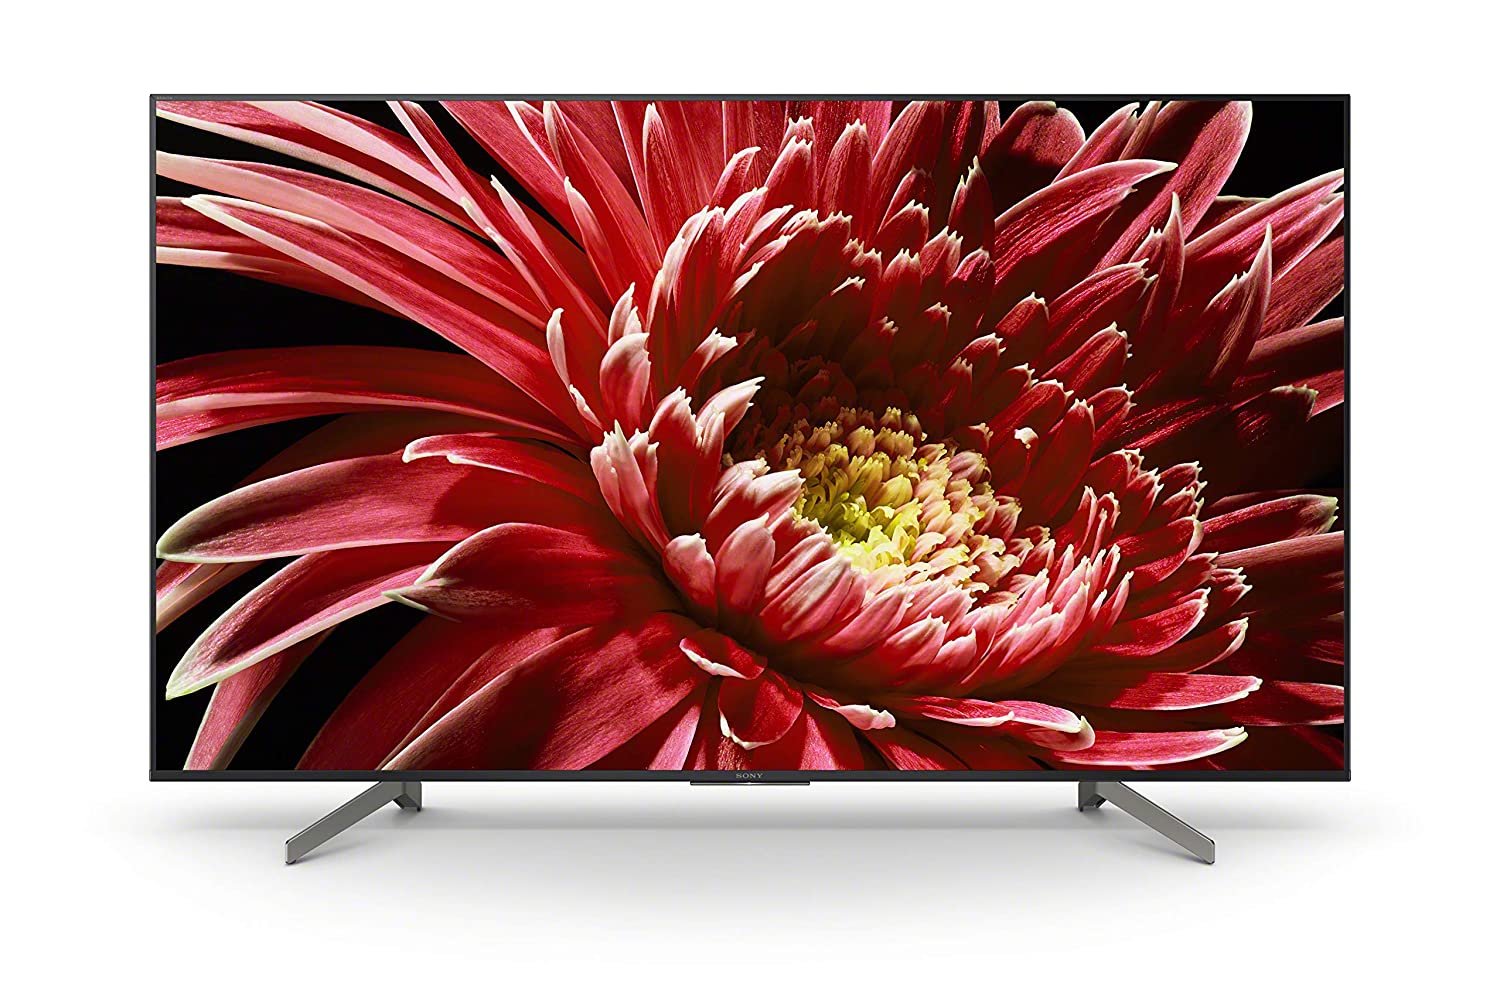 Sony Bravia KD-55X8500G Best Smart TV